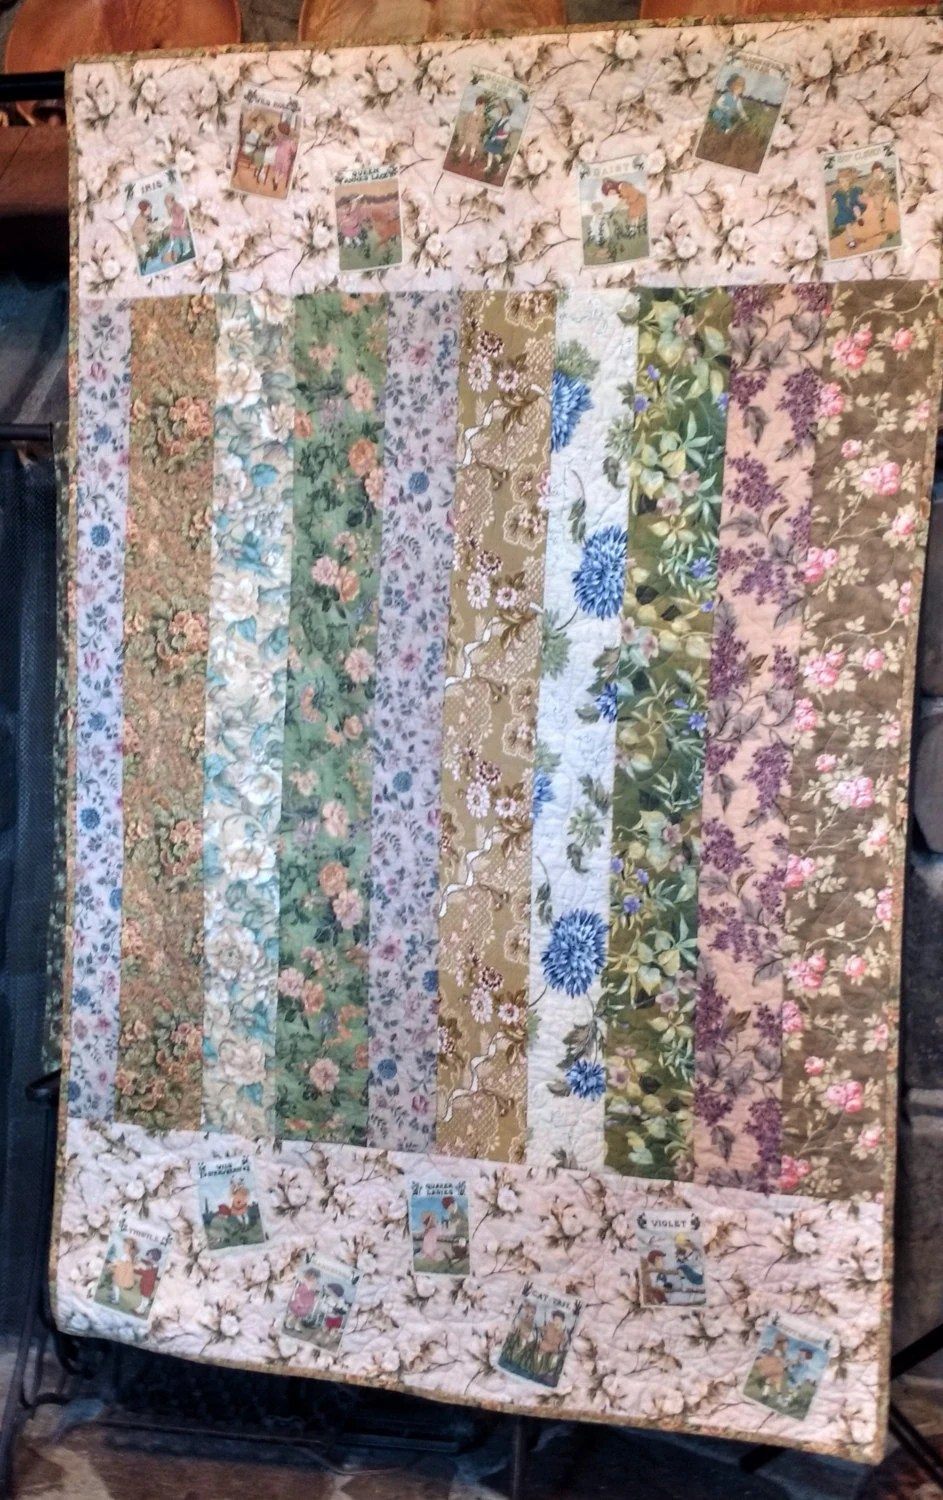 Sofa Quilting Fabric Lap Quilt Sofa Quilt Floral Fabrics Fabric Seed Packet Applique 42 By 65 Inches